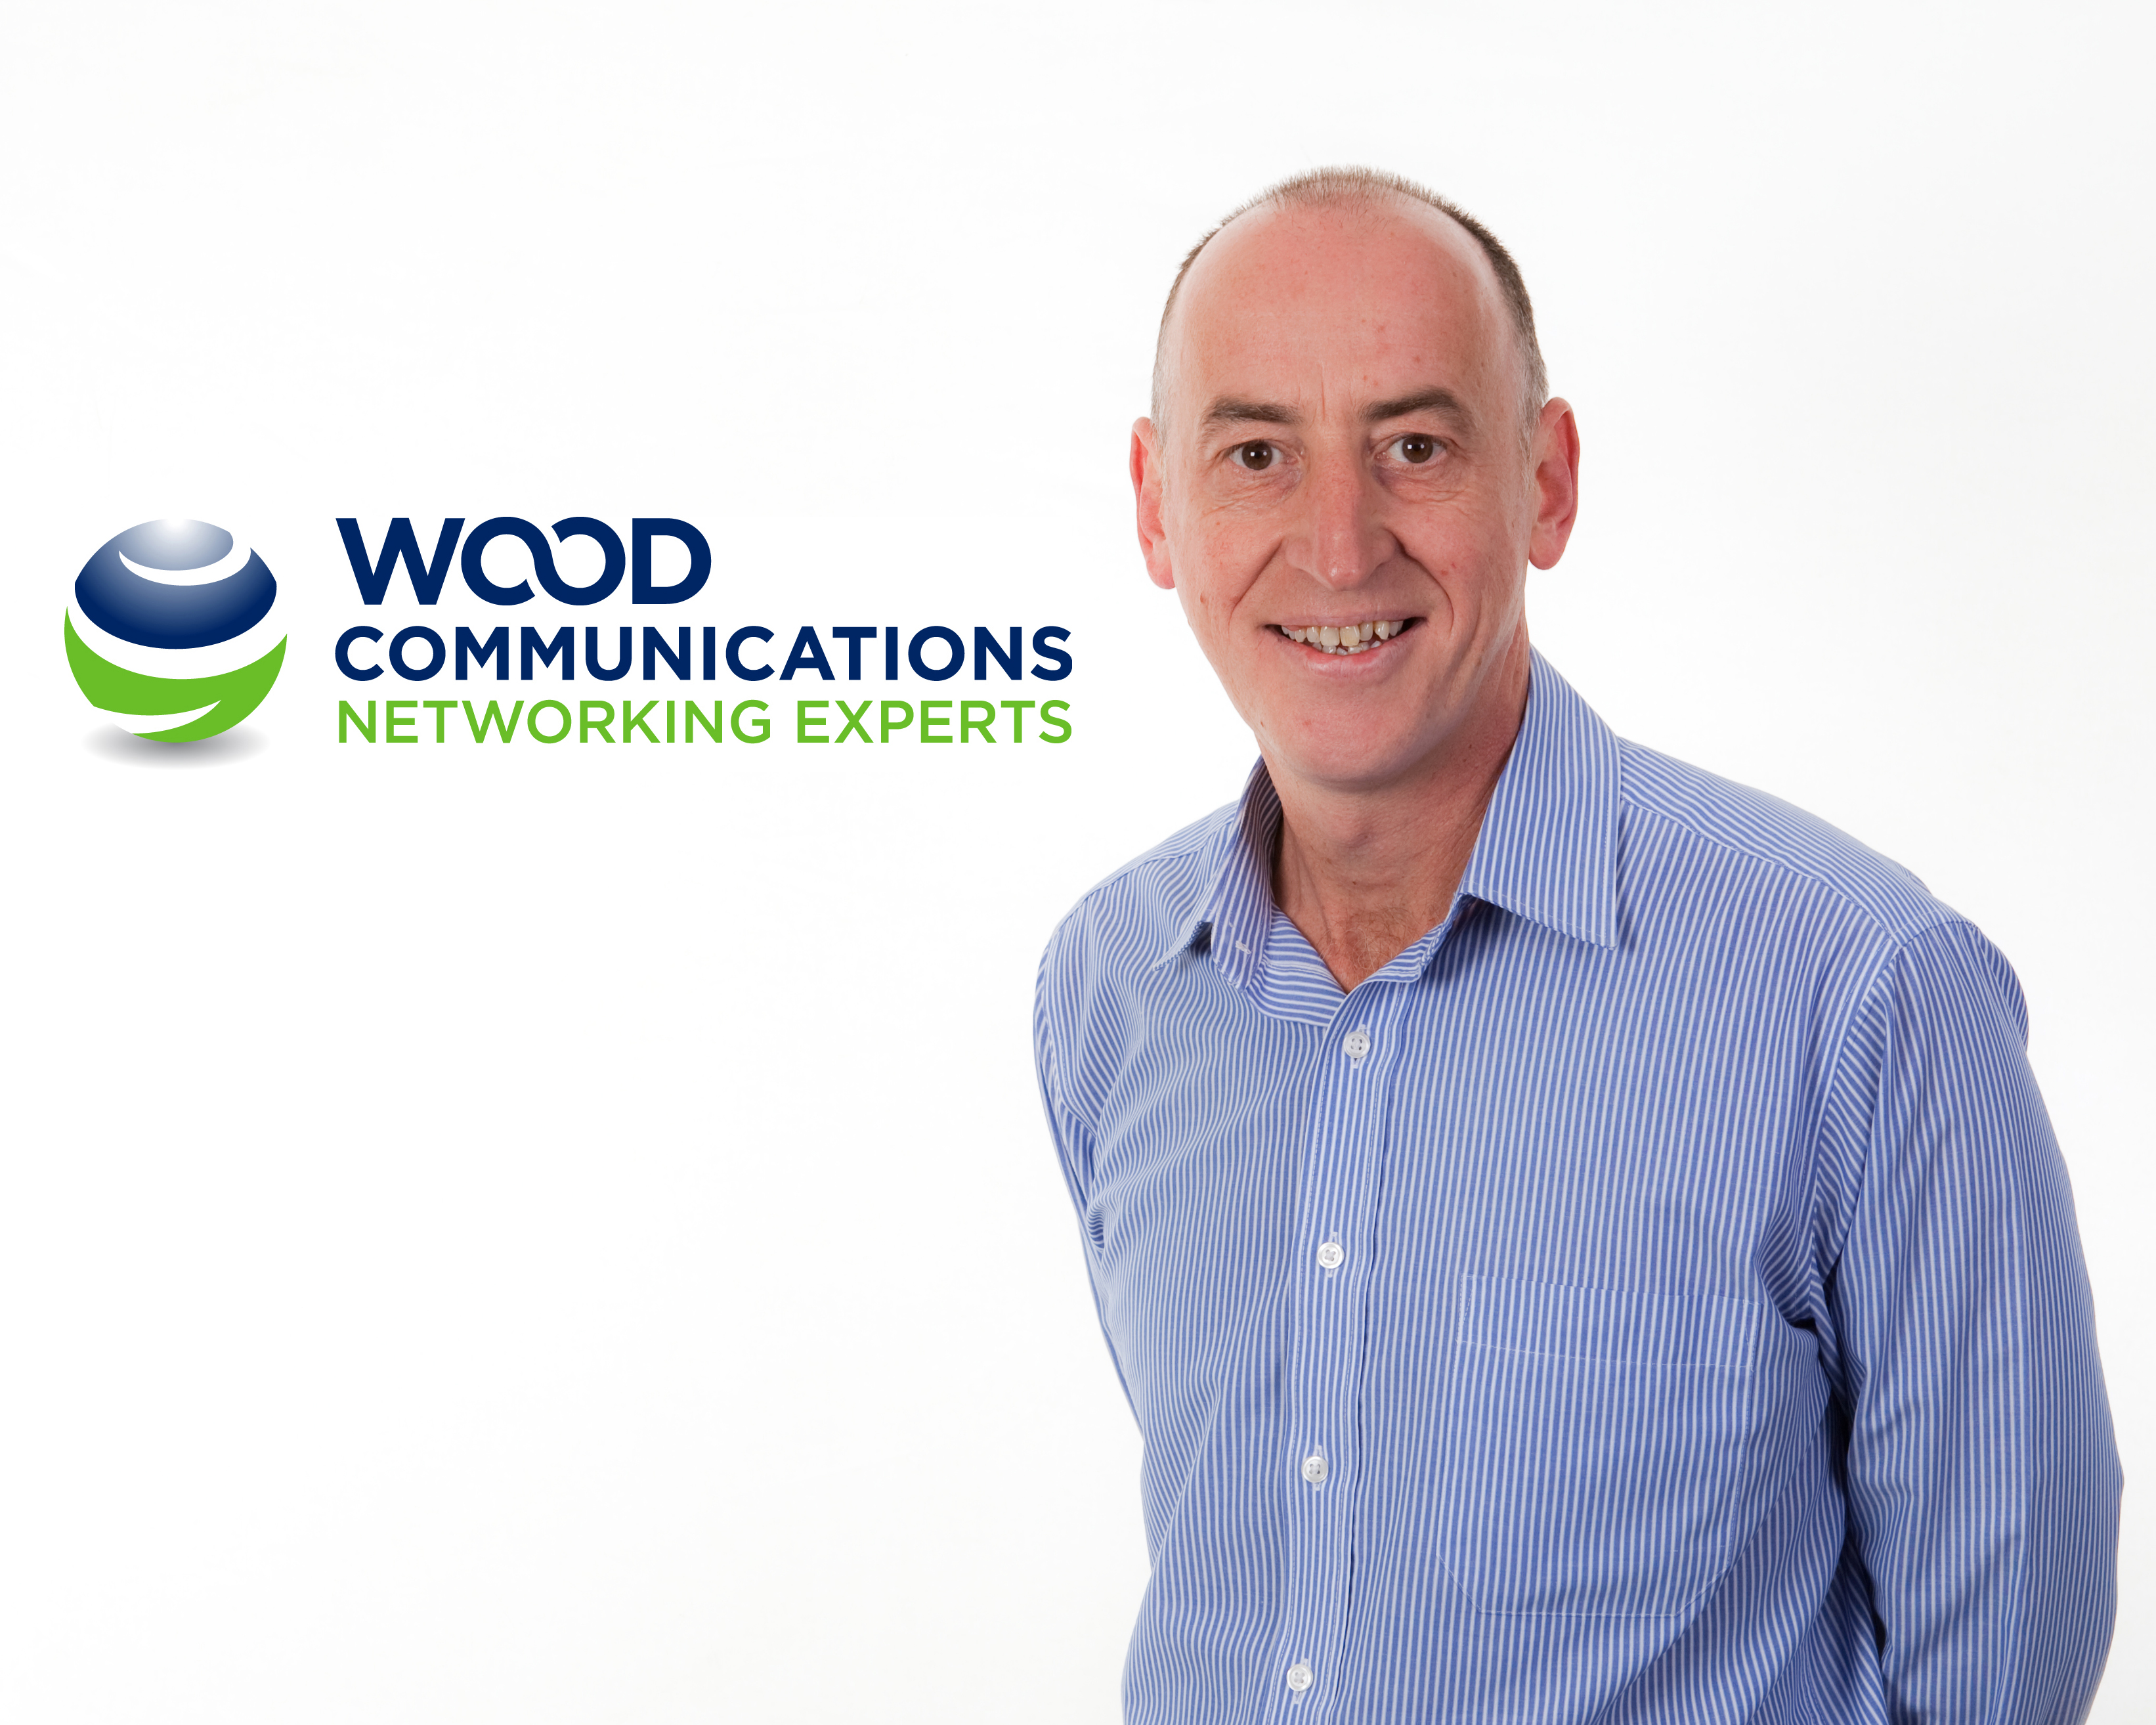 10. Niall McElroy - wood communications networking expert